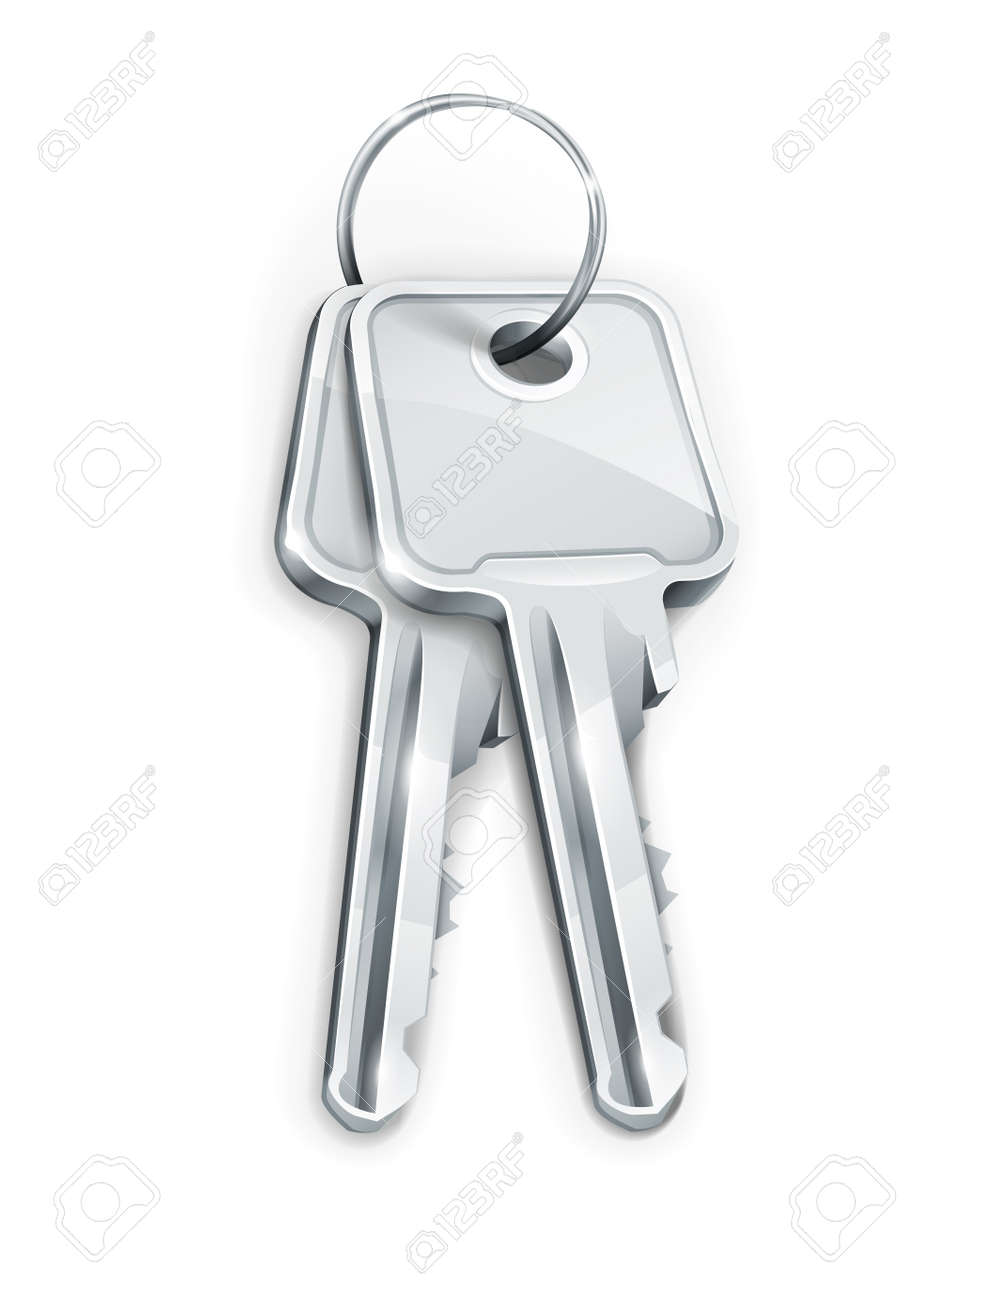 Sheaf of two silver keys. Transparent objects used for shadows and lights drawing Stock Vector - 12422390